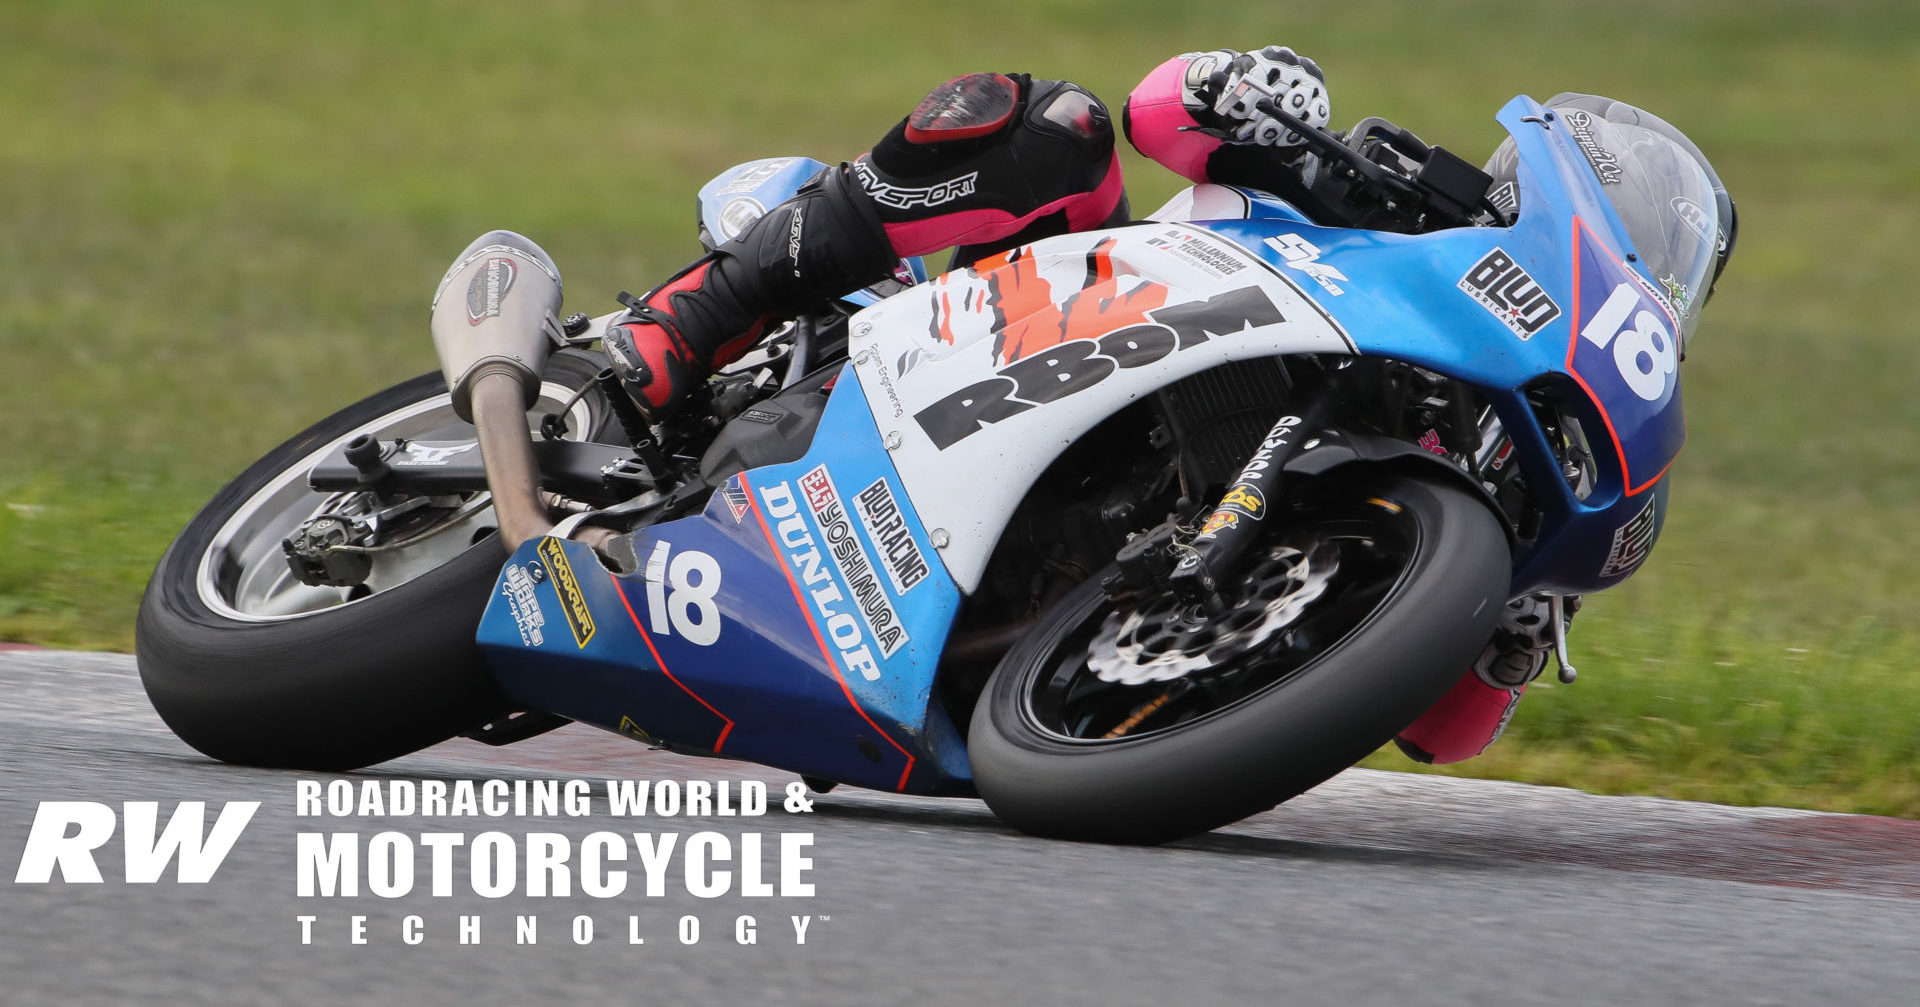 Jackson Blackmon (18) in action at a MotoAmerica Twins Cup event in 2019. Photo by Brian J. Nelson.